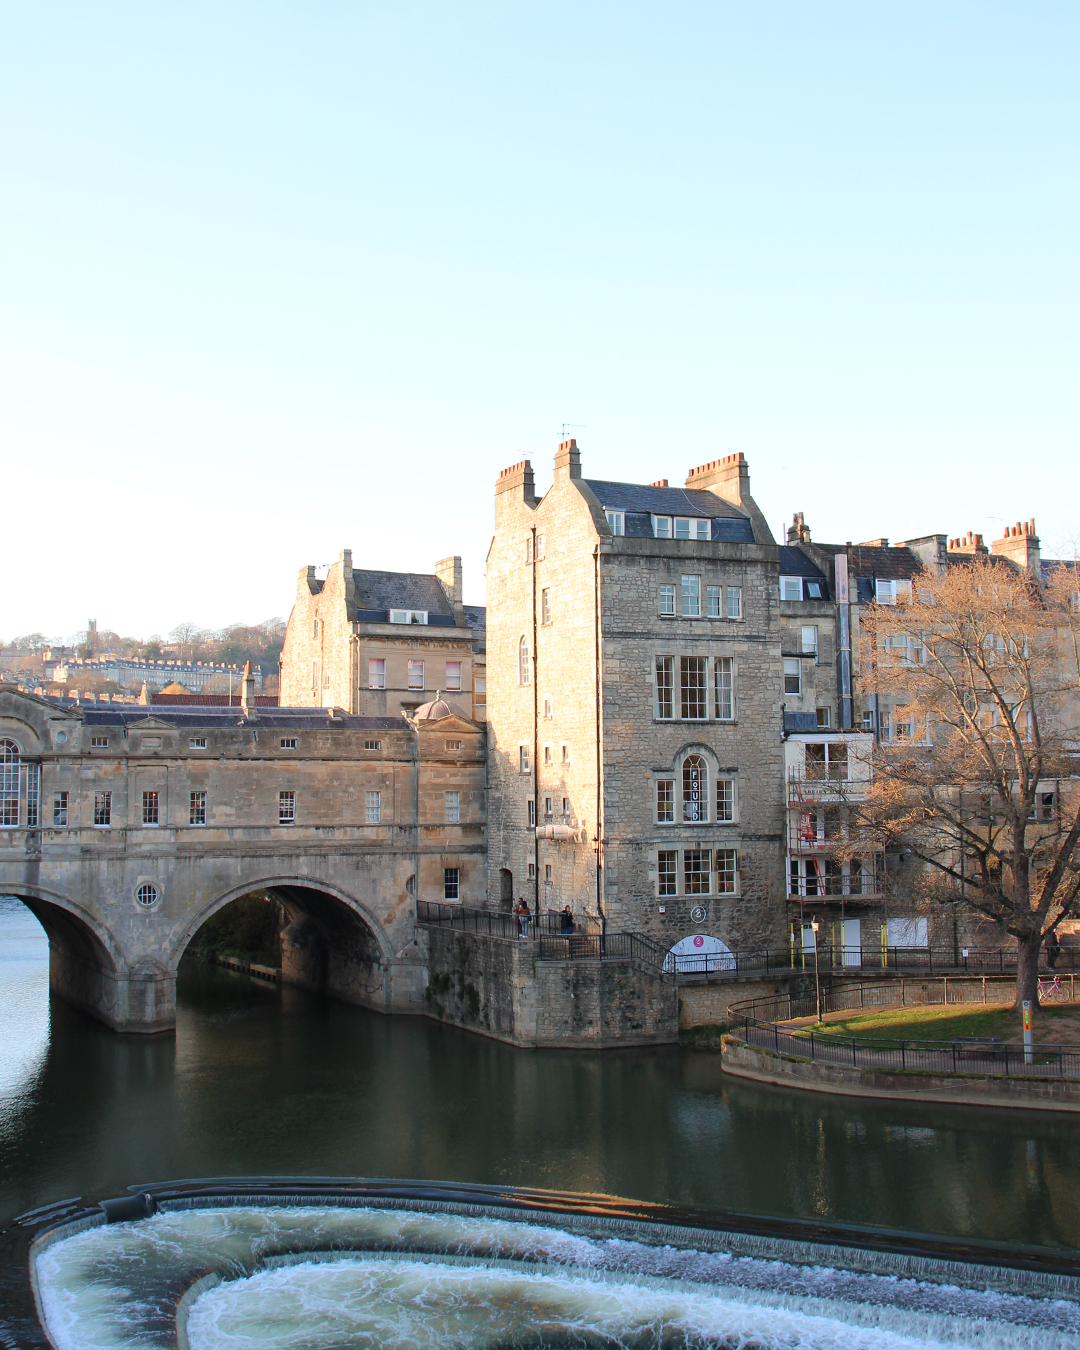 bath-mini-break-holiday-things-to-do-bridge-river-nancy-straughan.jpg